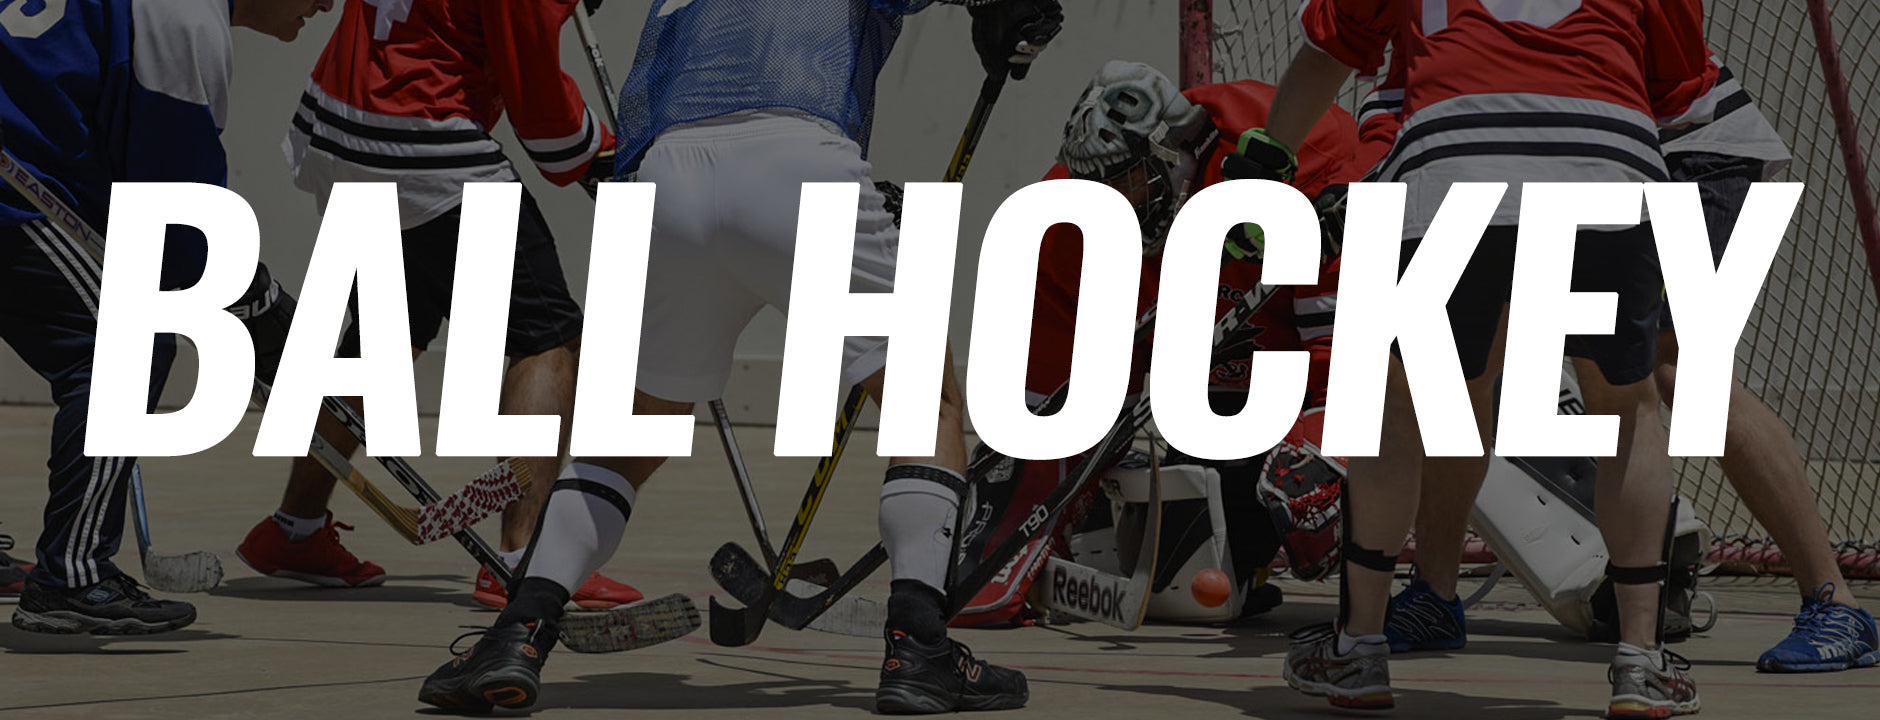 Massive Savings On Hockey Equipment